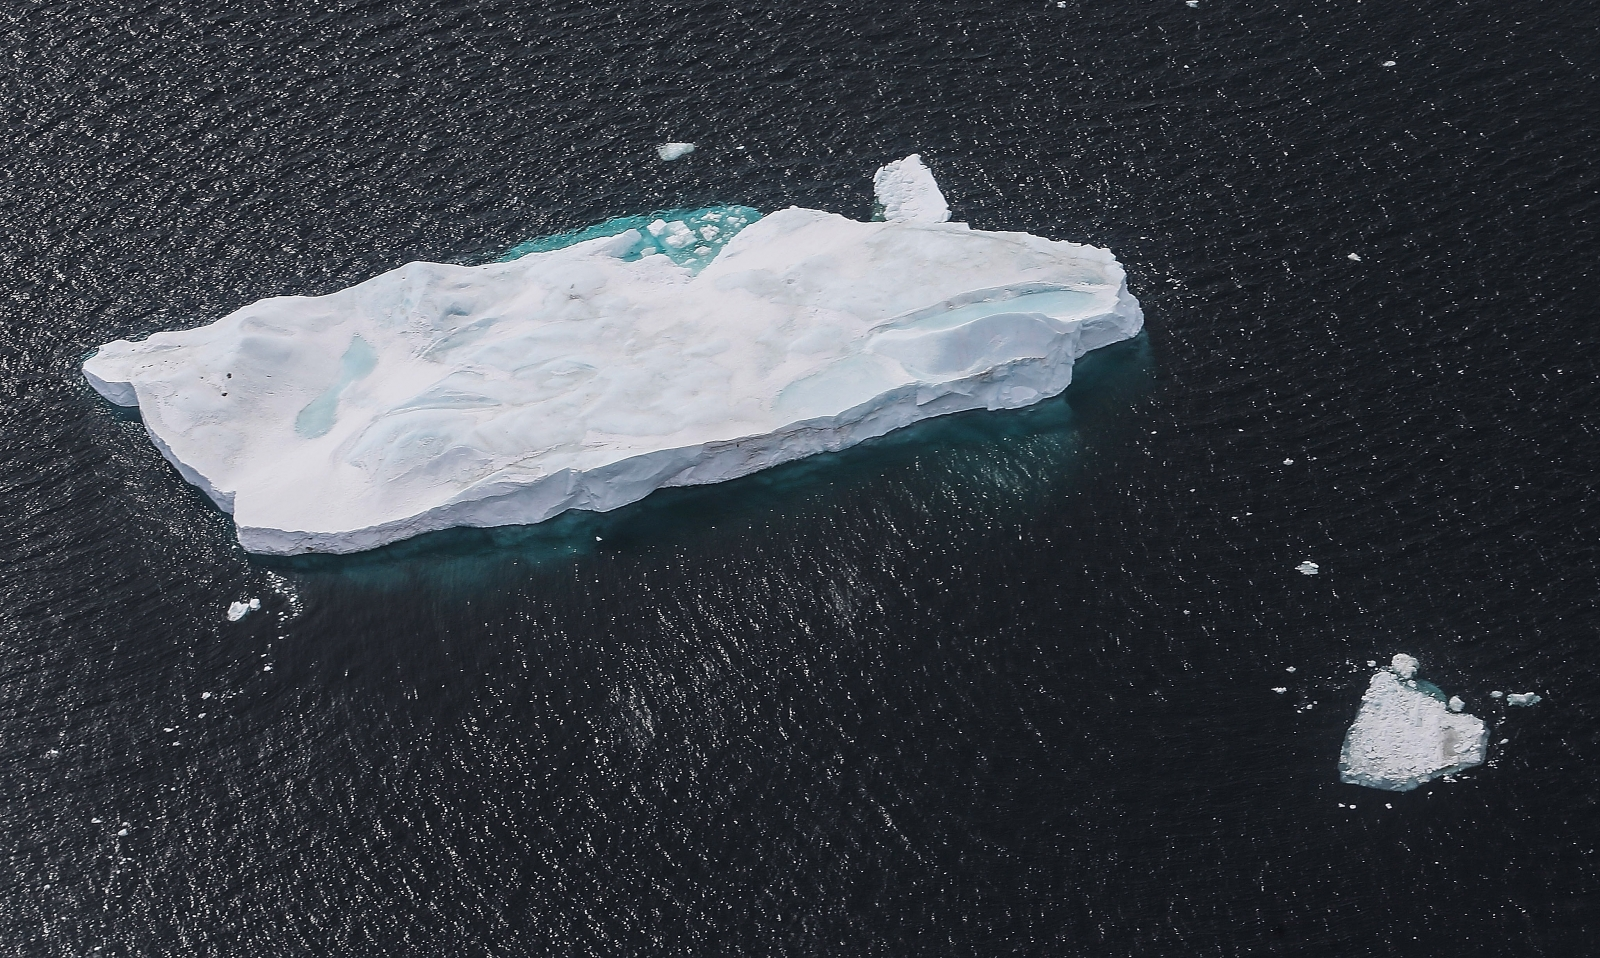 antarcticas-hidden-caves-could-be-home-to-scores-of-undiscovered-plants-and-animals